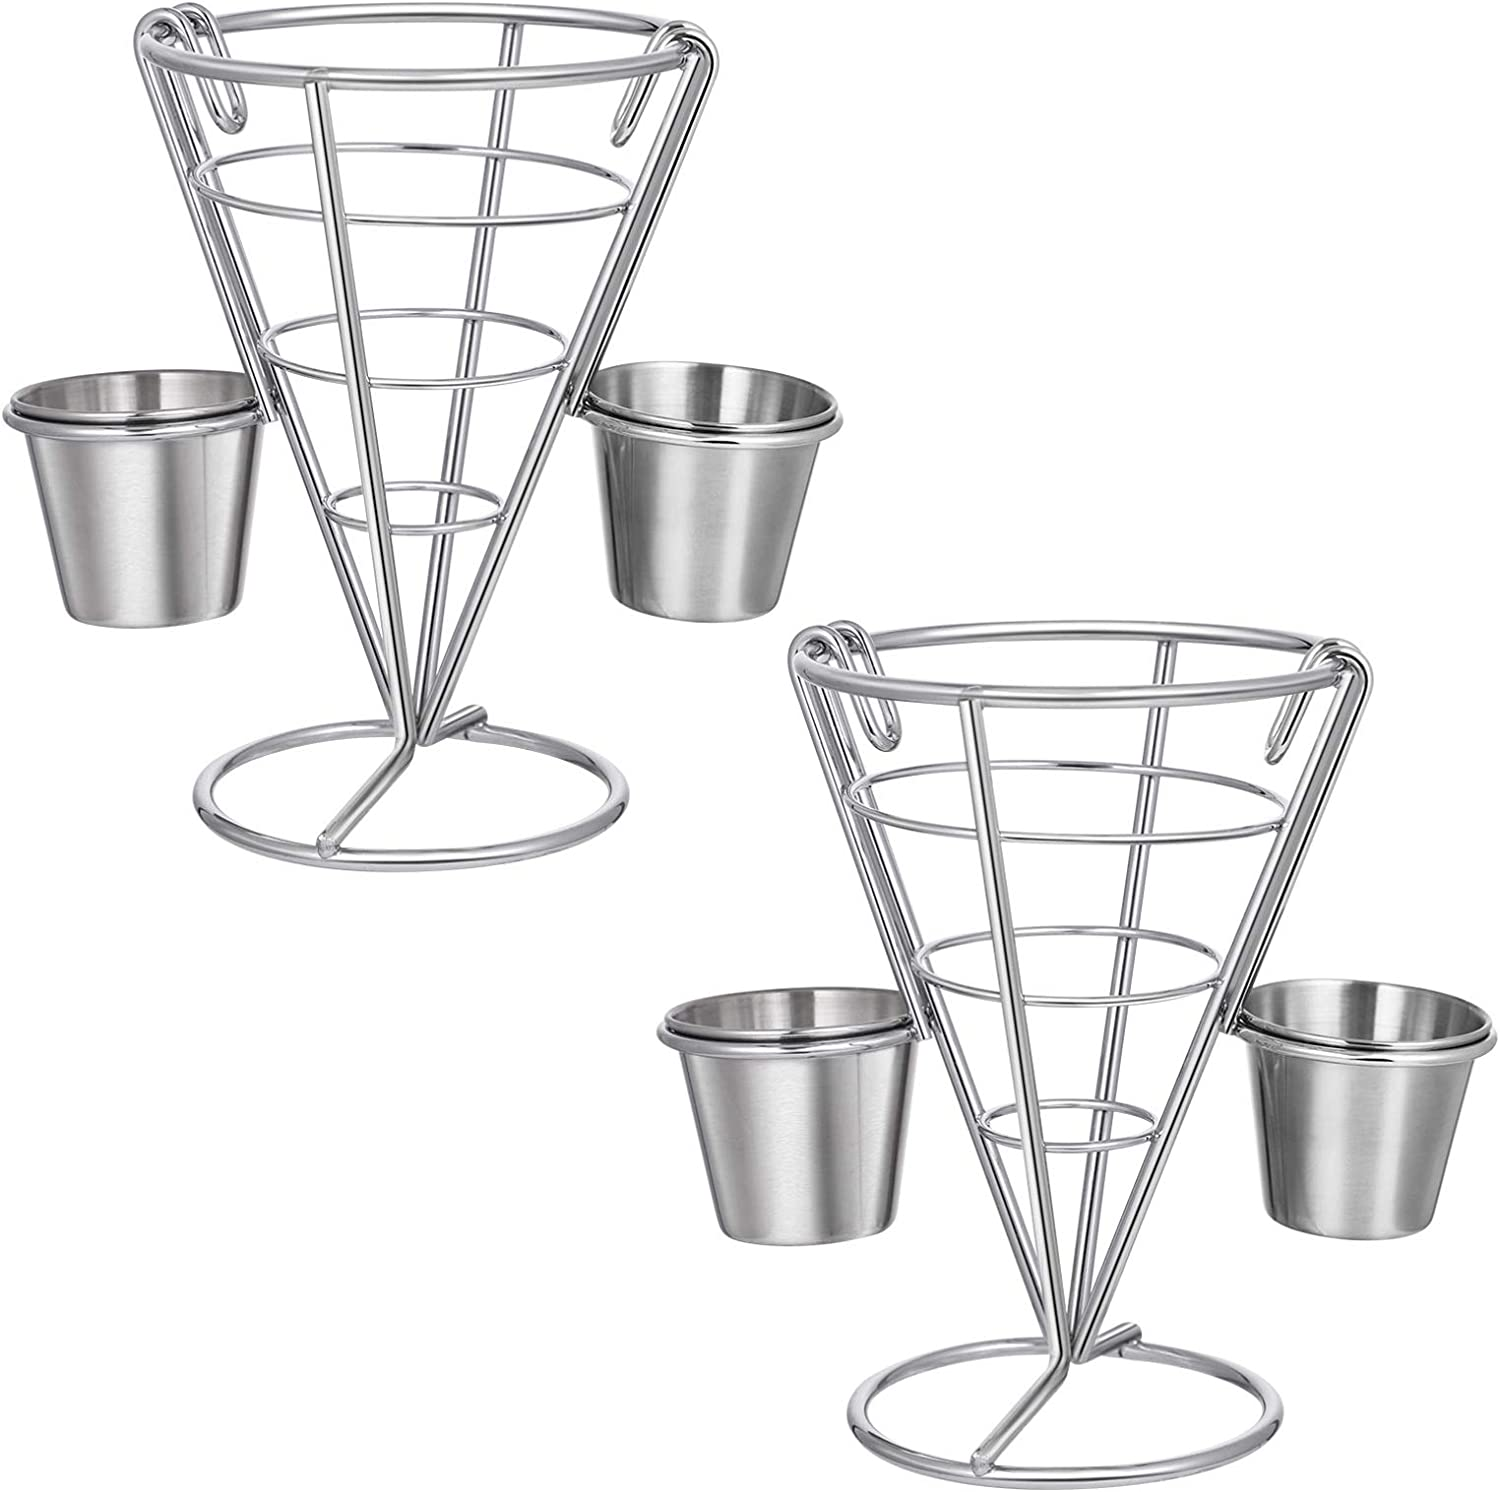 Hemoton 2pcs French Fries Stands Fish and Chips Basket Holders Snack Appetizer Serving Rack Food Display Wire Stands for Kitchen Restaurant Buffet